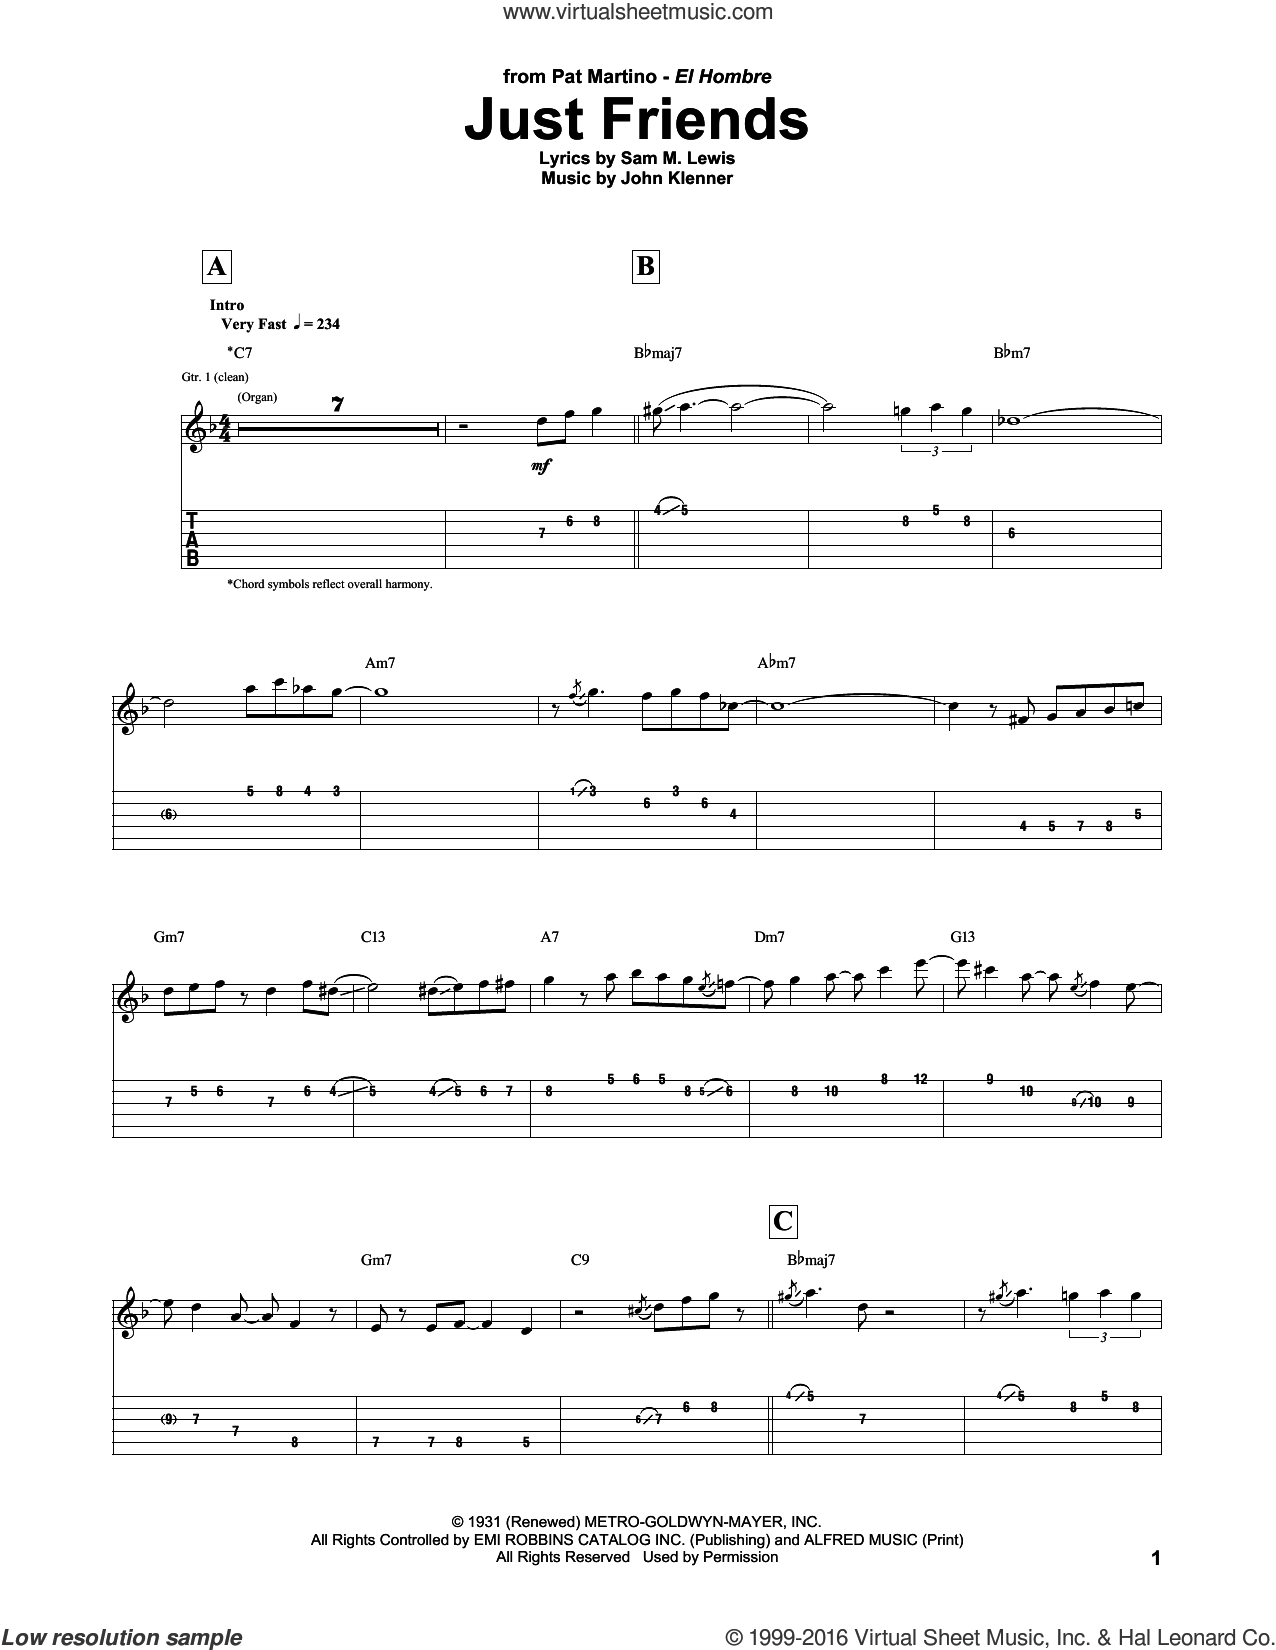 Just Friends sheet music for guitar (tablature) by Pat Martino, John Klenner and Sam Lewis, intermediate skill level